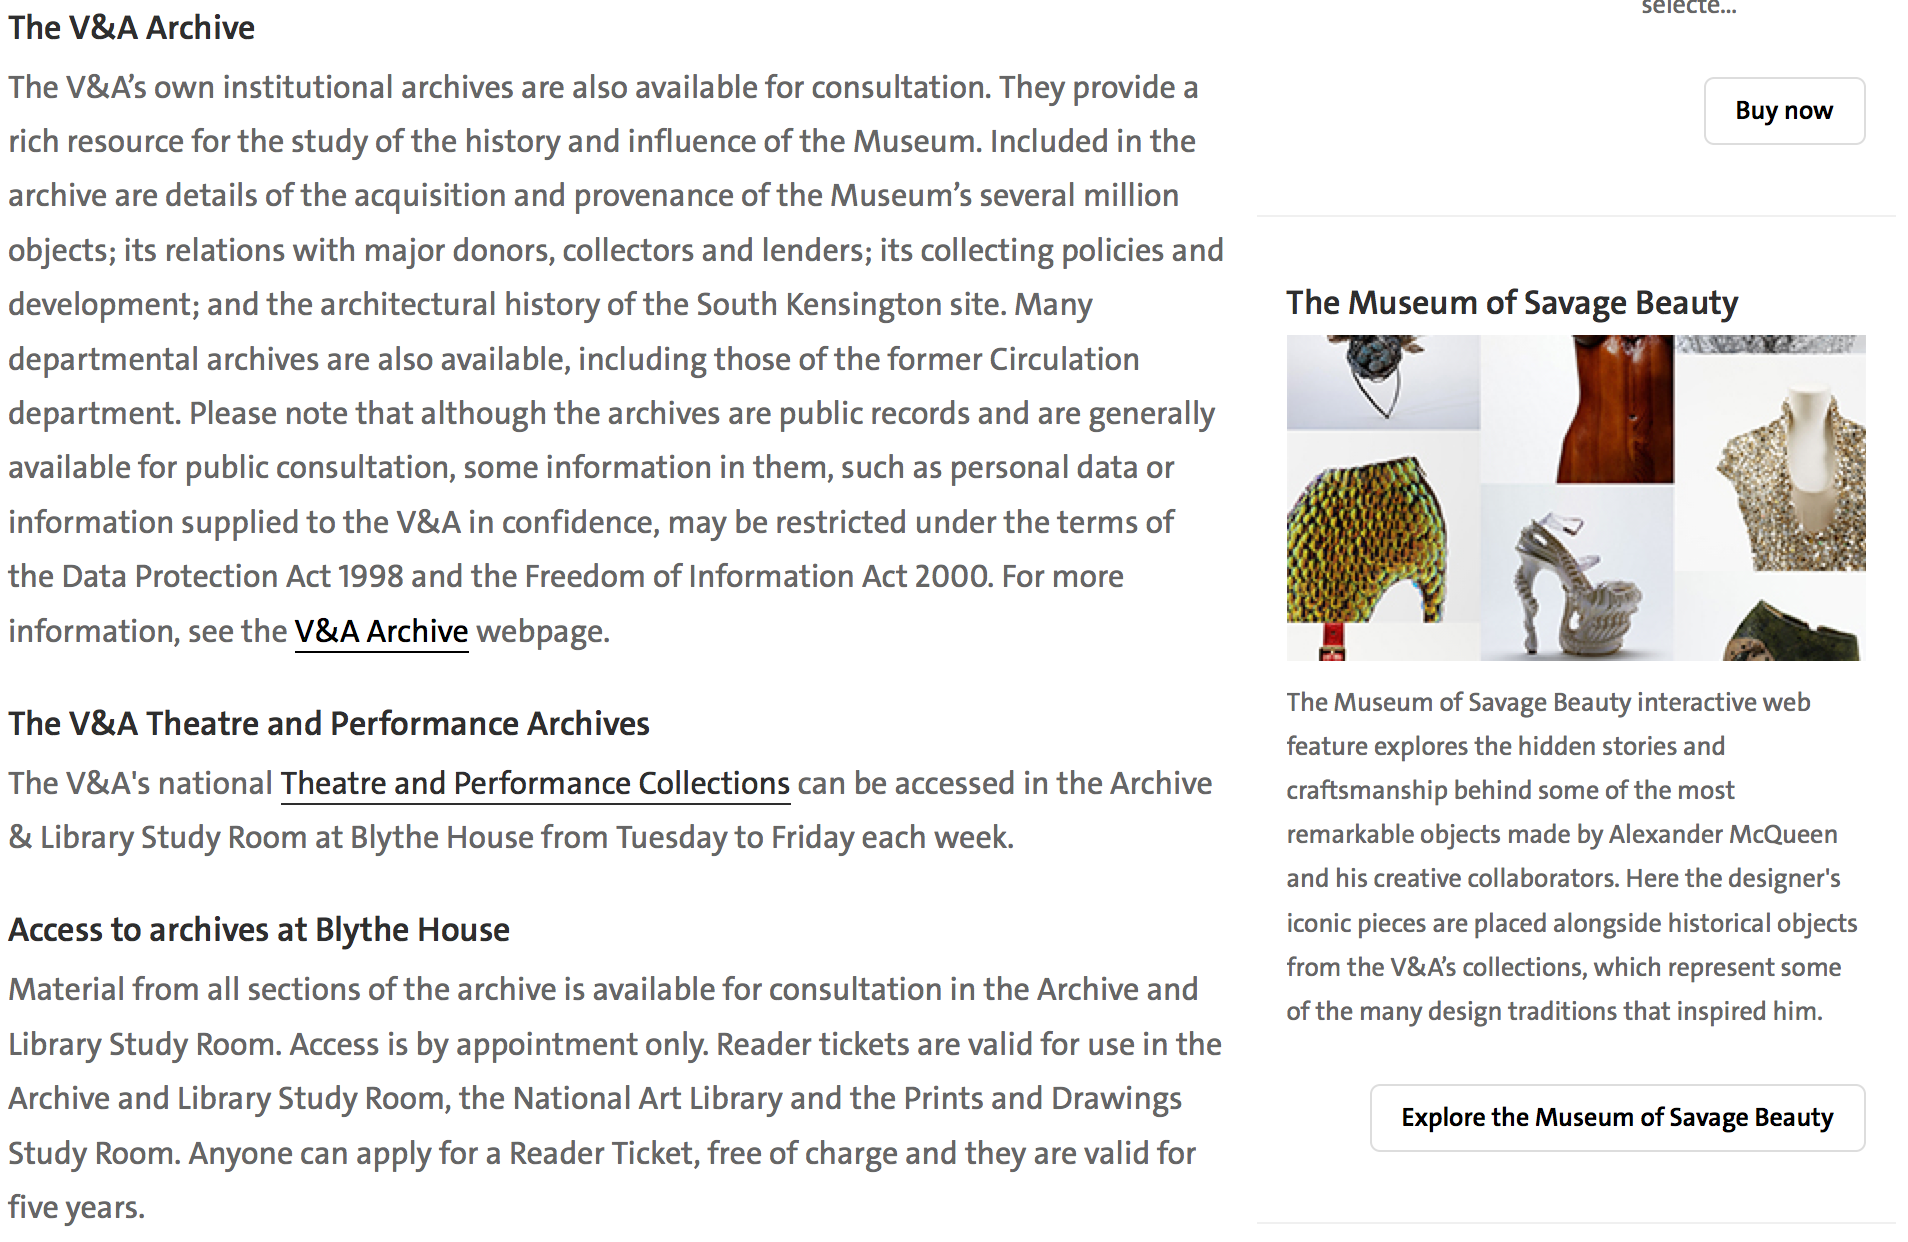 Screen Shot of webpage access to the V&A Archive.